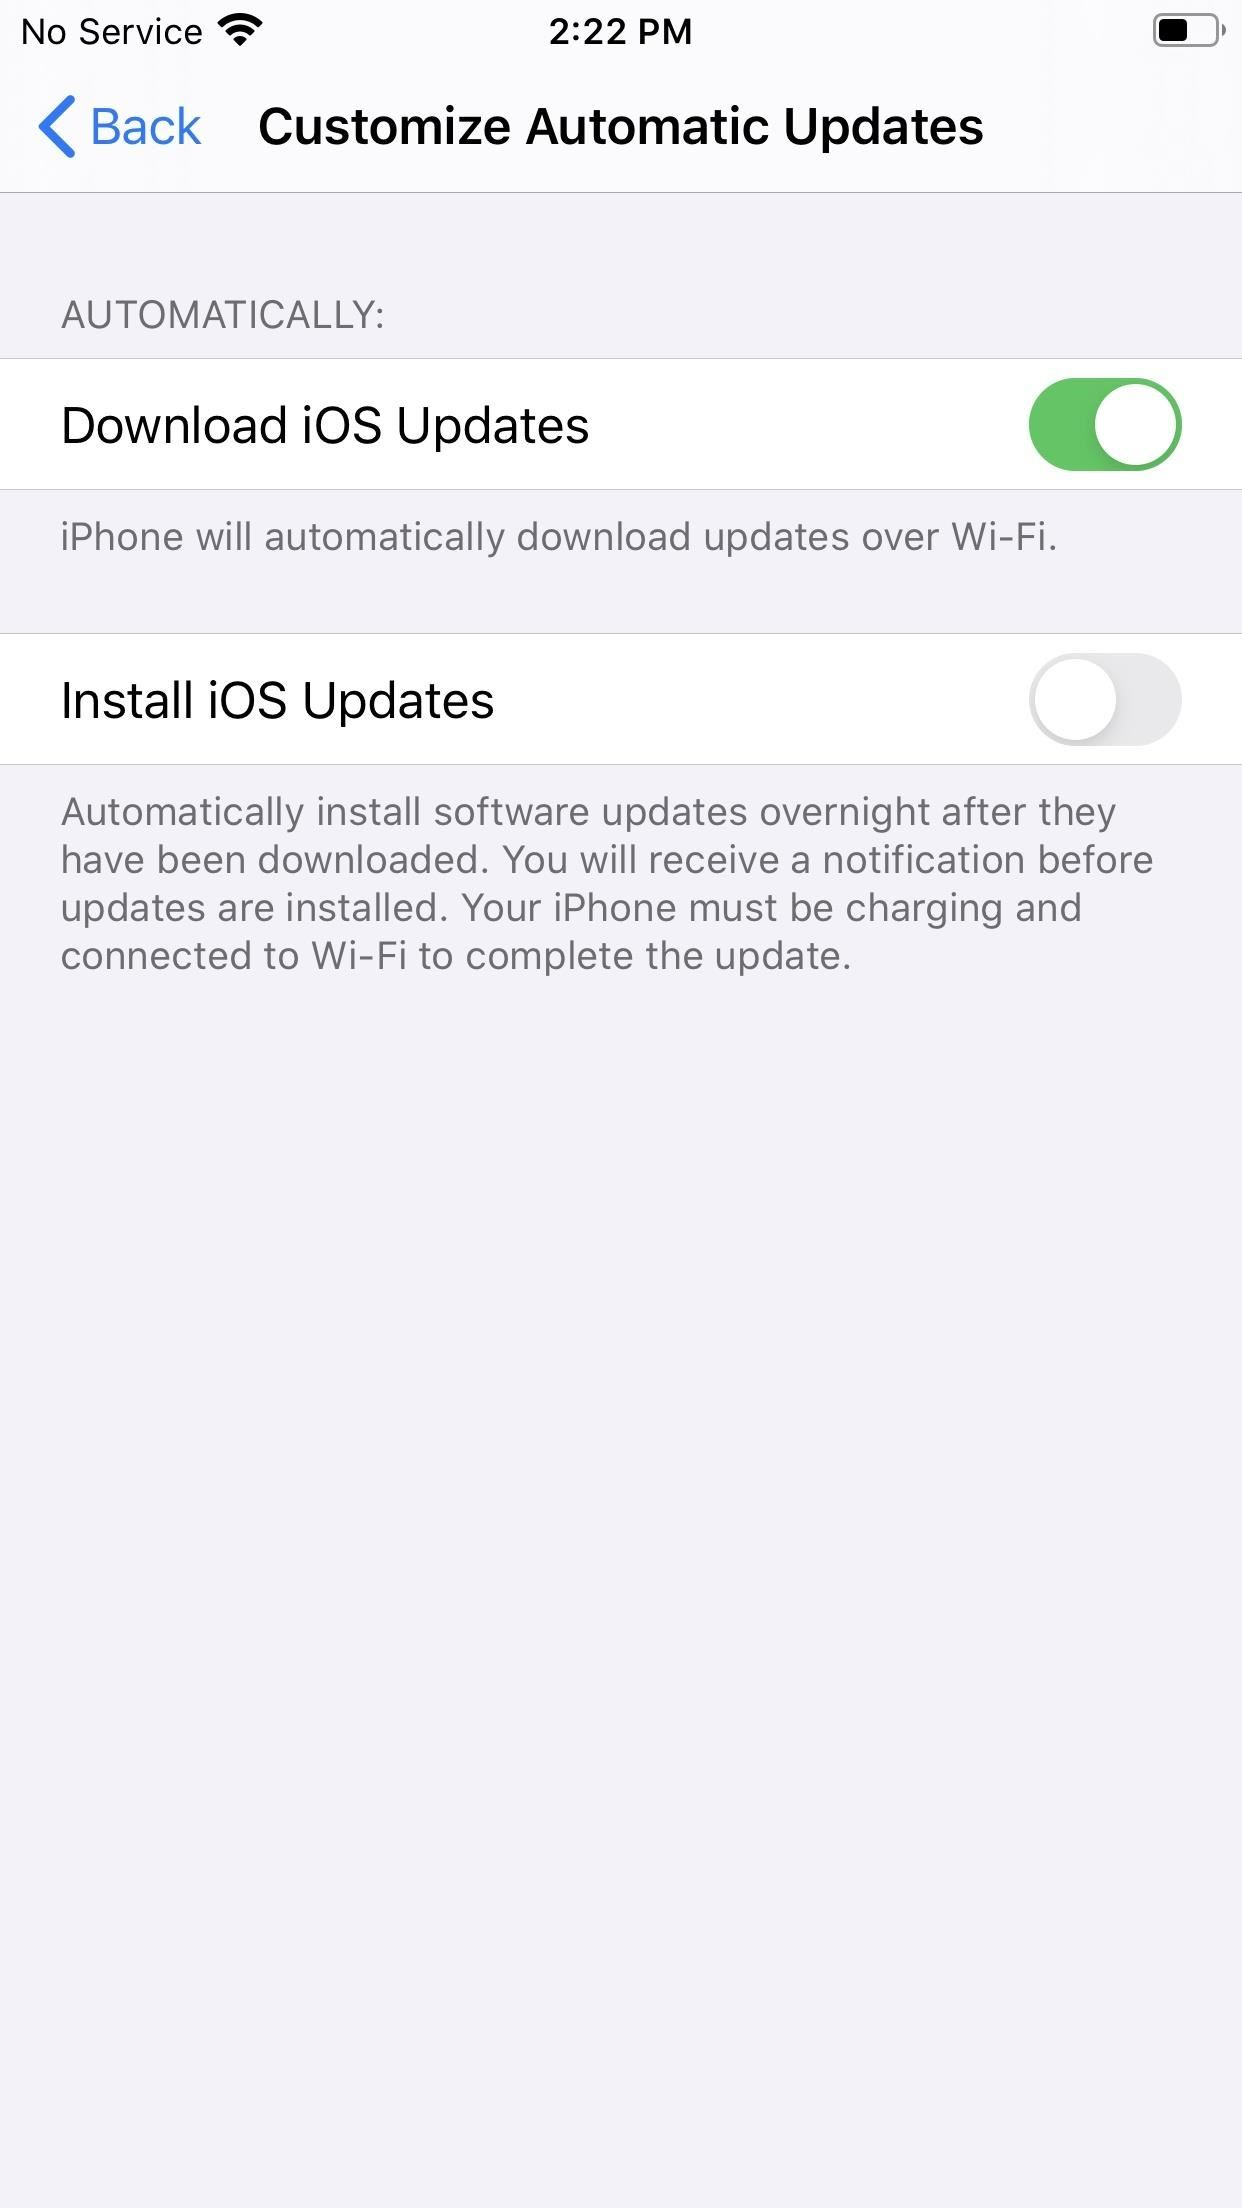 Apple Releases iOS 13.6 Developer Beta 2 for iPhone, Includes Option to Automatically Download New Updates